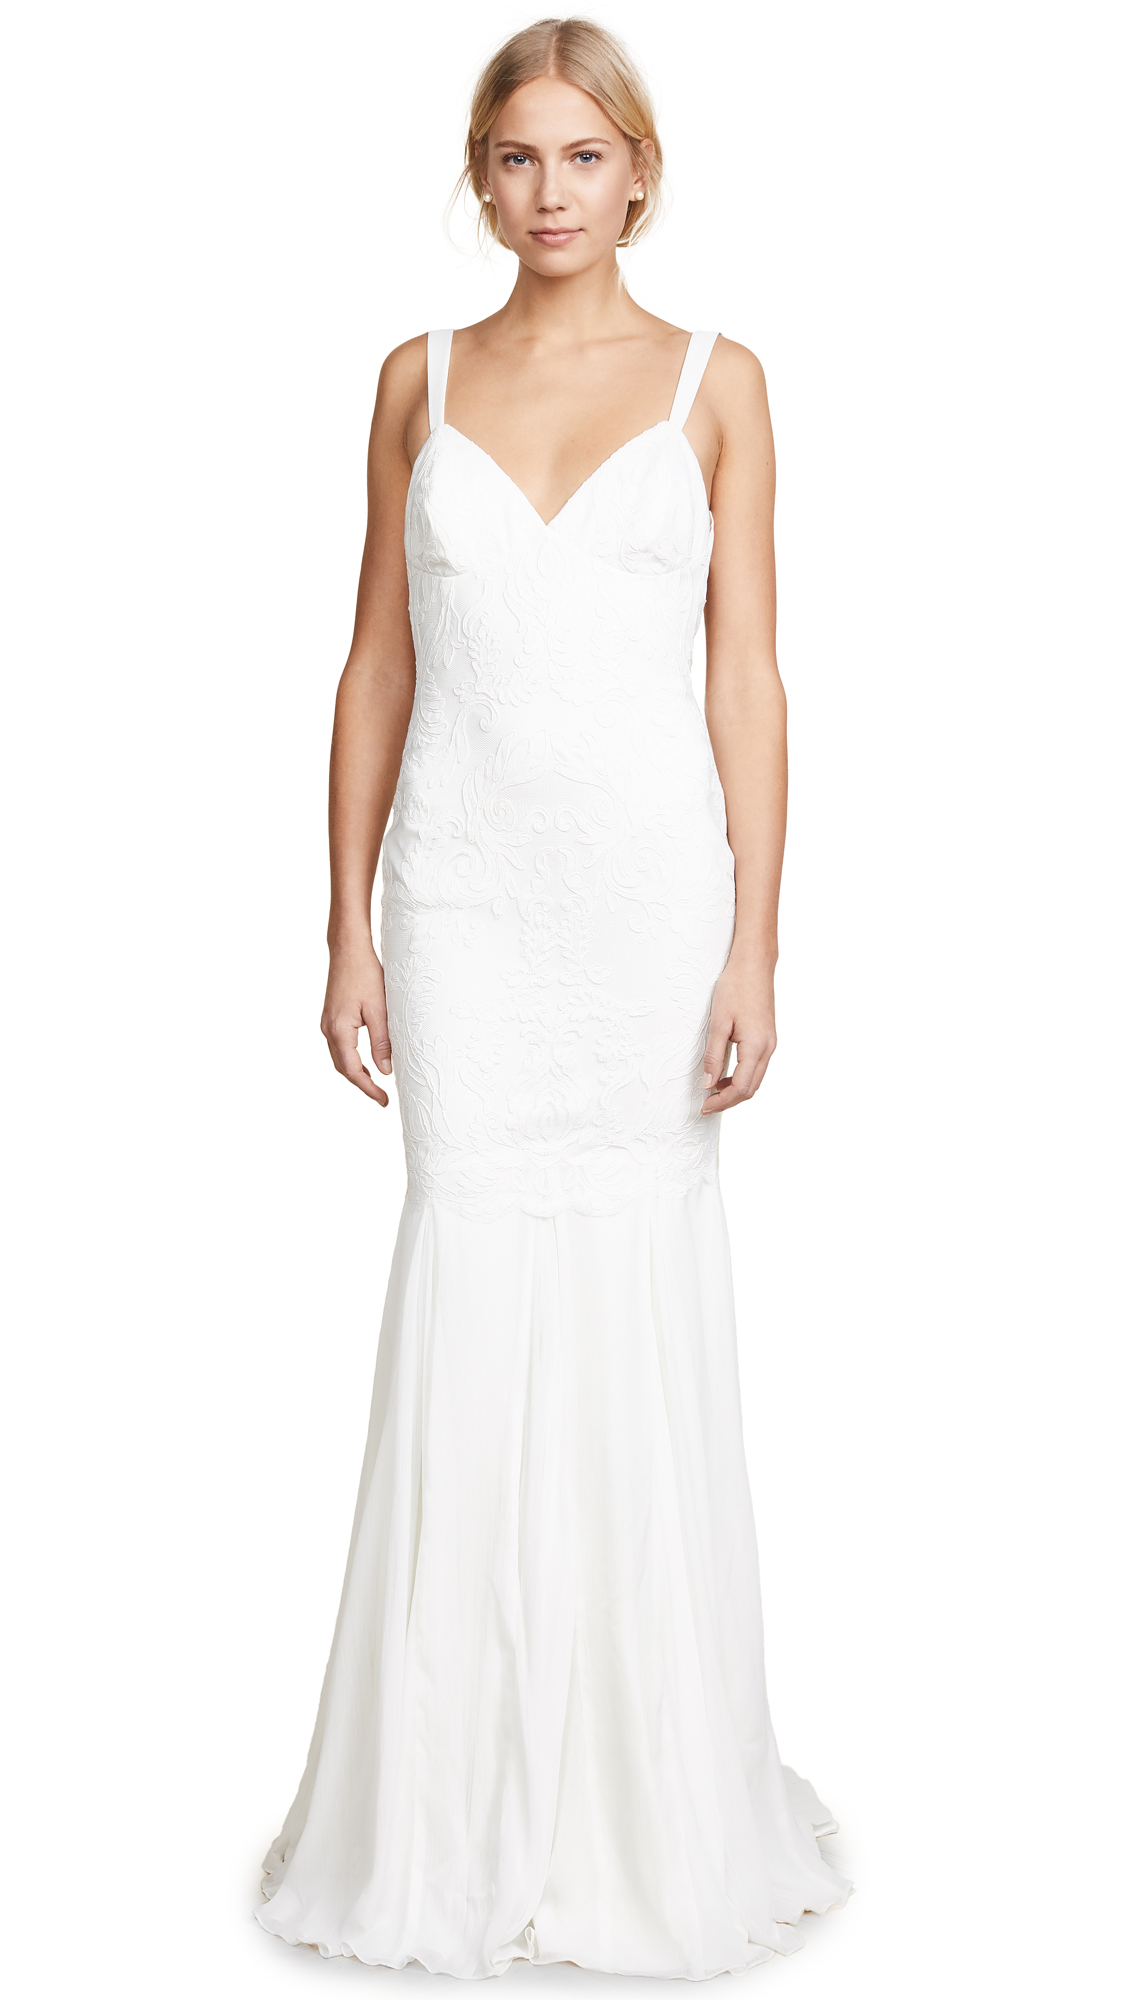 Katie May Monaco Gown - Ivory